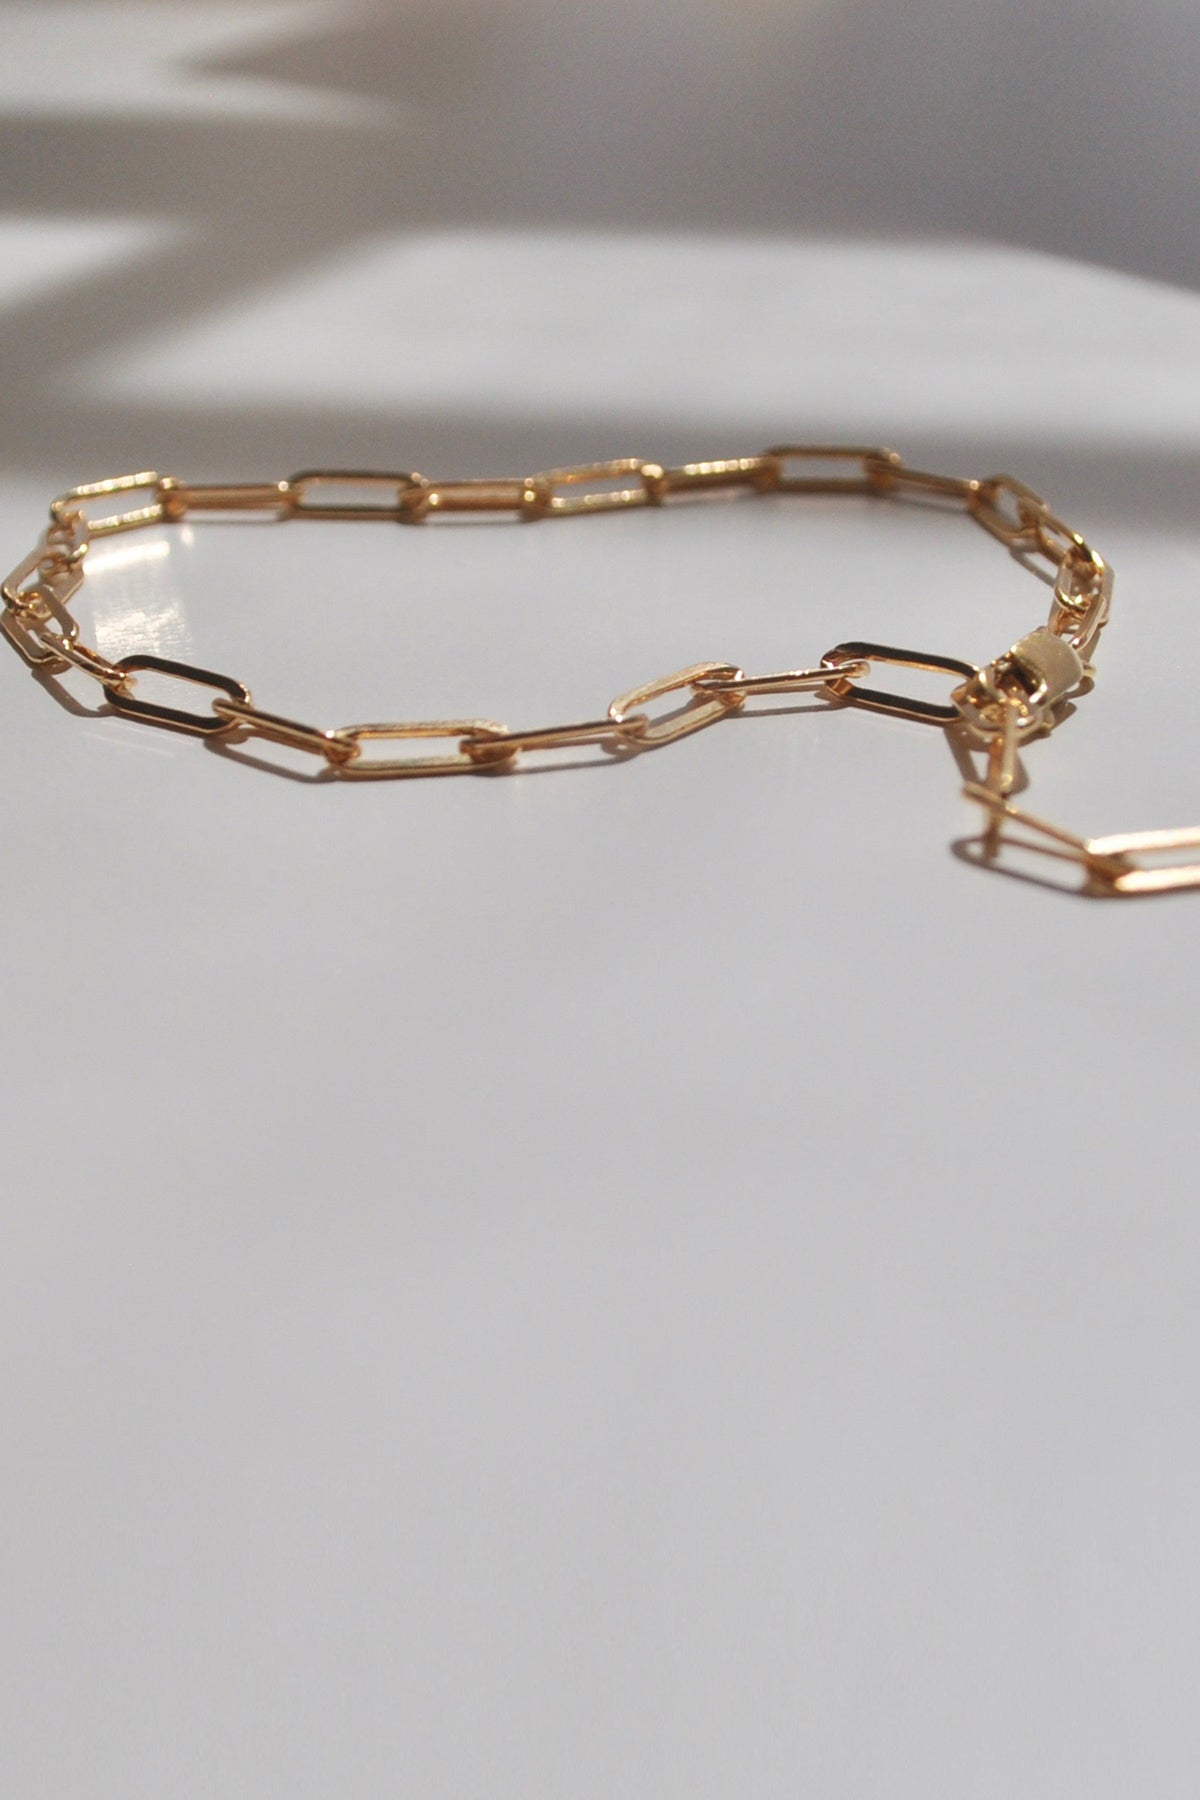 FINN GOLD BRACELET BY THATCH